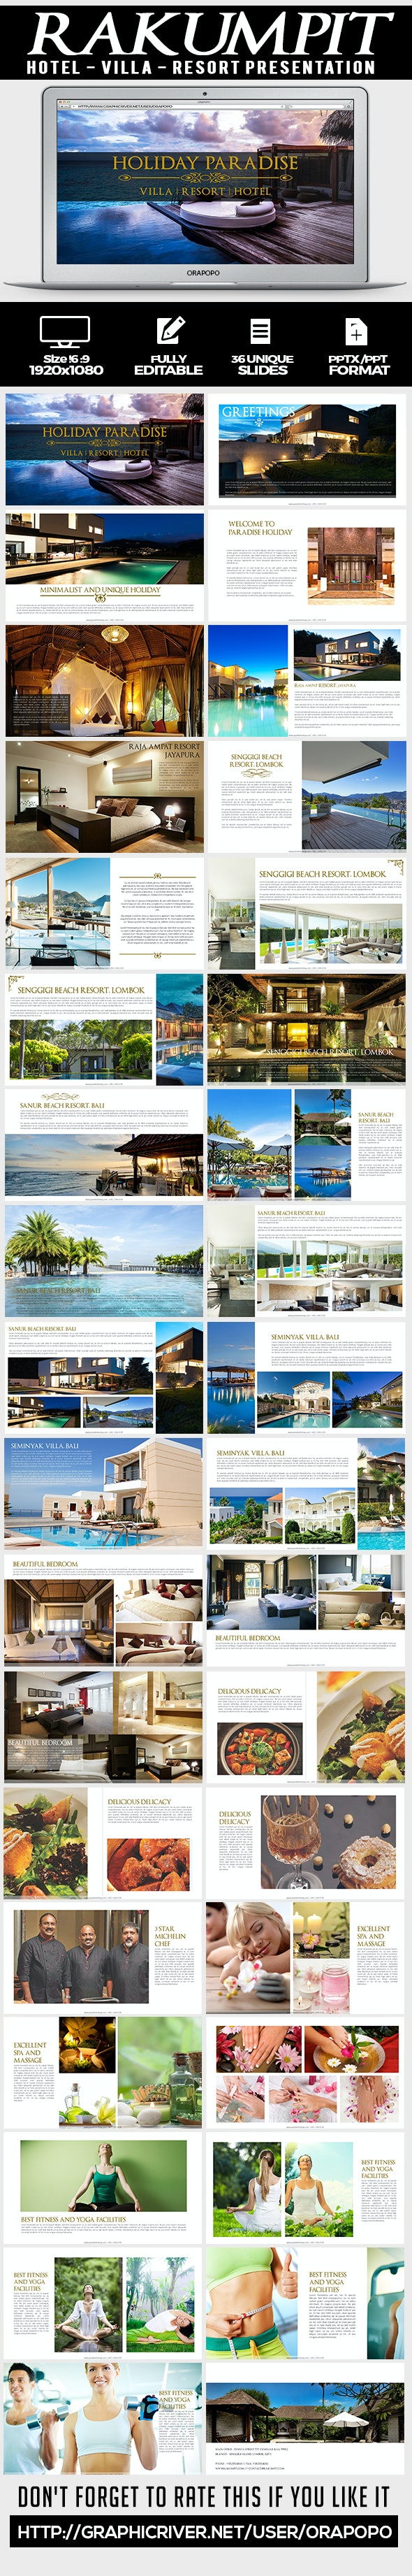 Rakumpit ~ Hotel and Resort Presentation Template  - Creative PowerPoint Templates